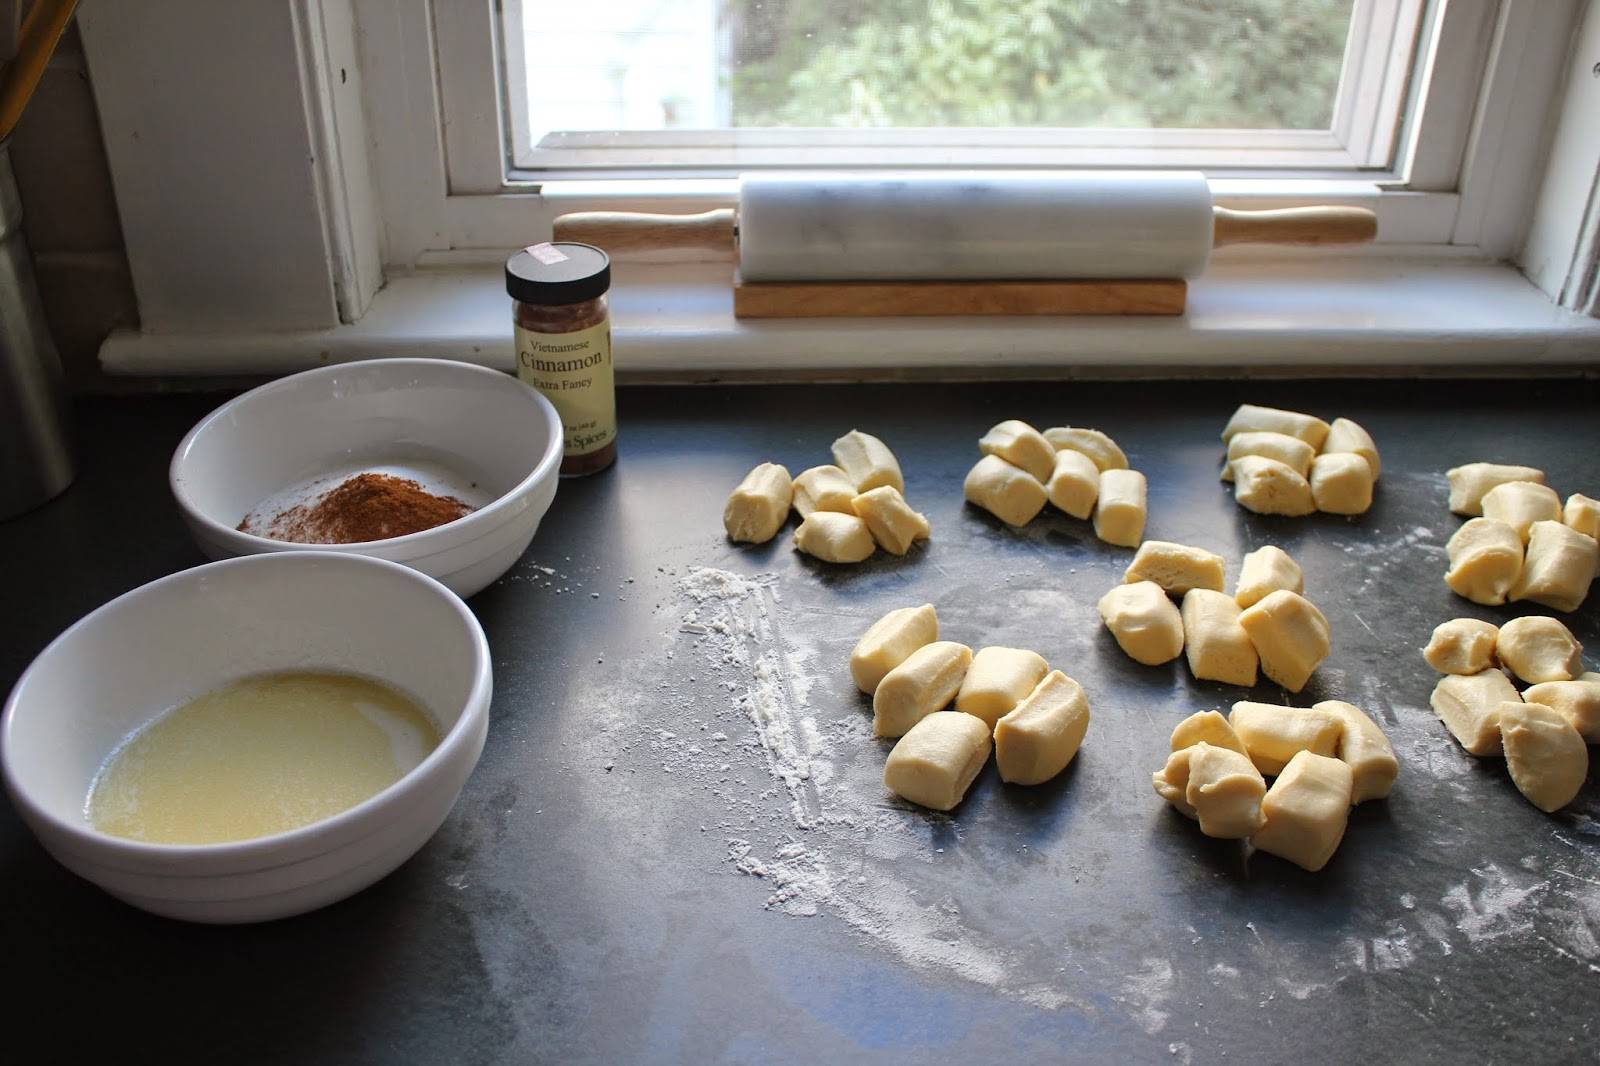 Making cinnamon-sugar brioche buns